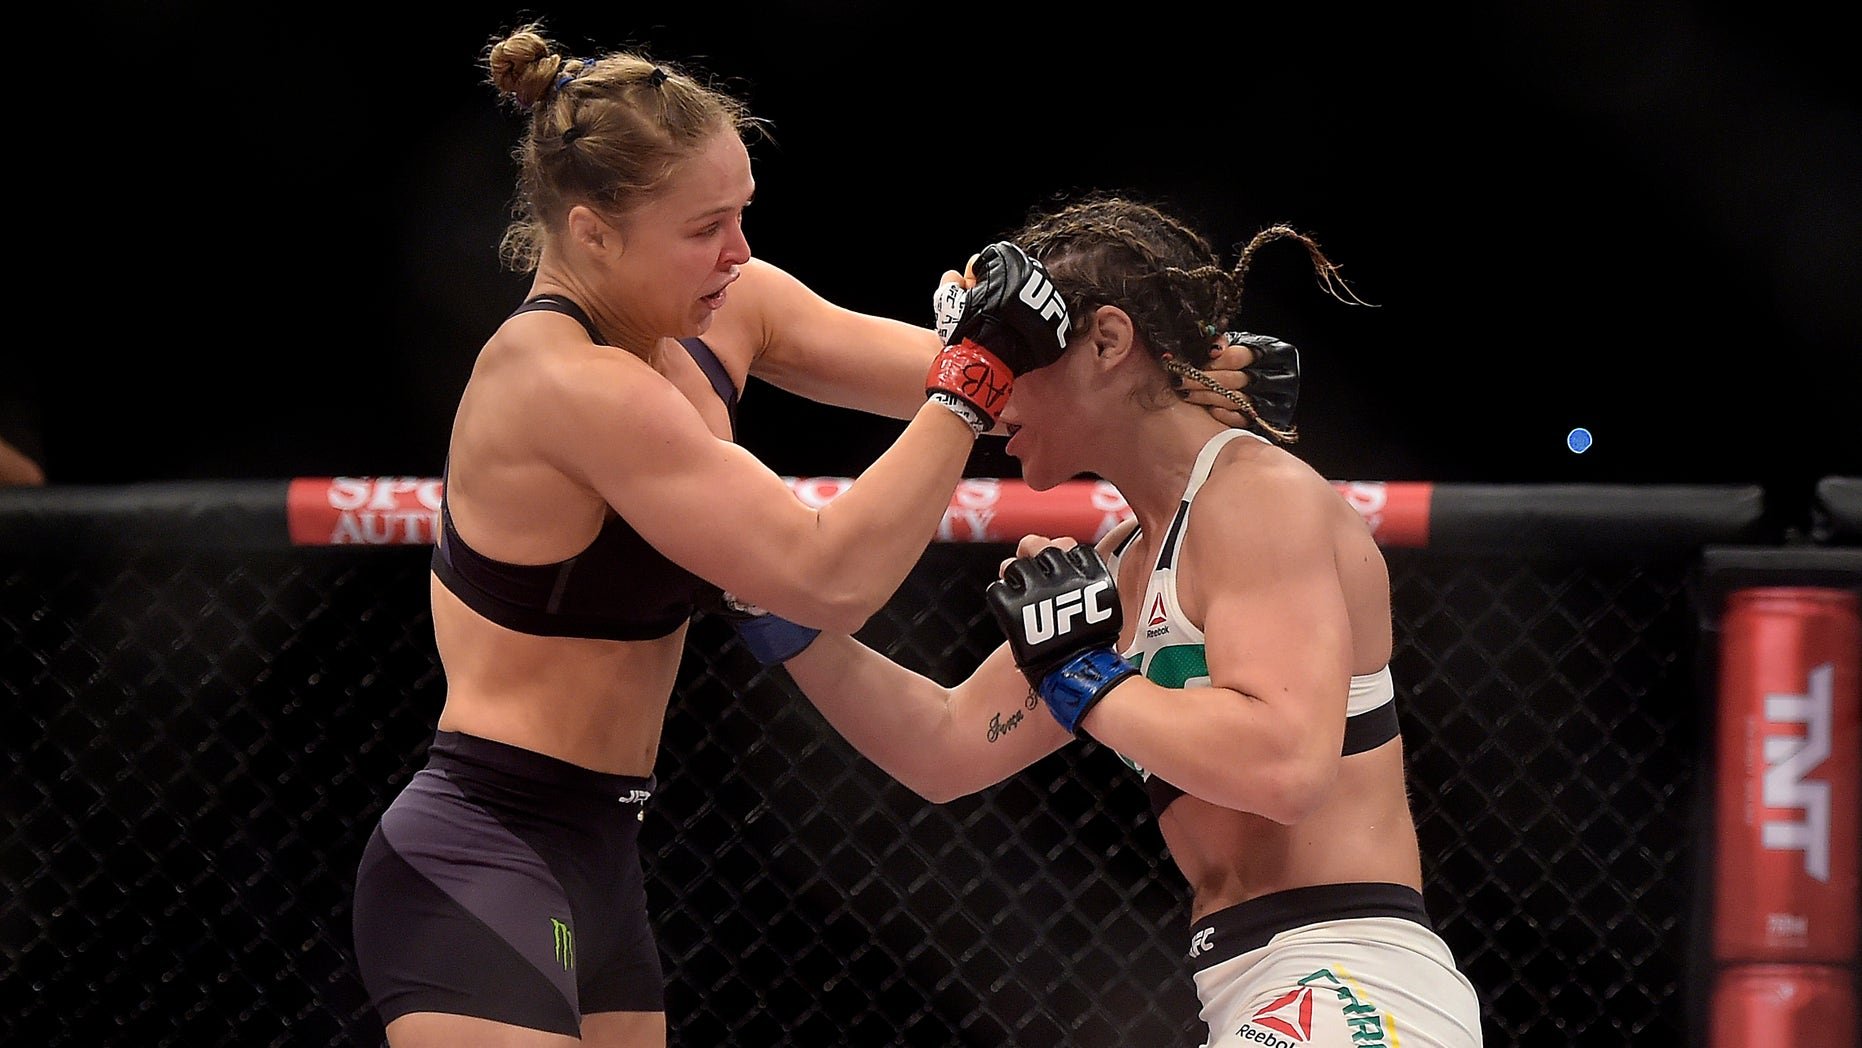 In this photo released by Inovafoto, Ronda Rousey, left, of the United States, battles Brazil's Bethe Correia during their mixed martial arts bantamweight title fight at UFC 190, early Sunday, Aug. 2, 2015, in Rio de Janeiro, Brazil. Rousey knocked out Correia 34 seconds into the first round to win. (Alexandre Loureiro/Inovafoto via AP)